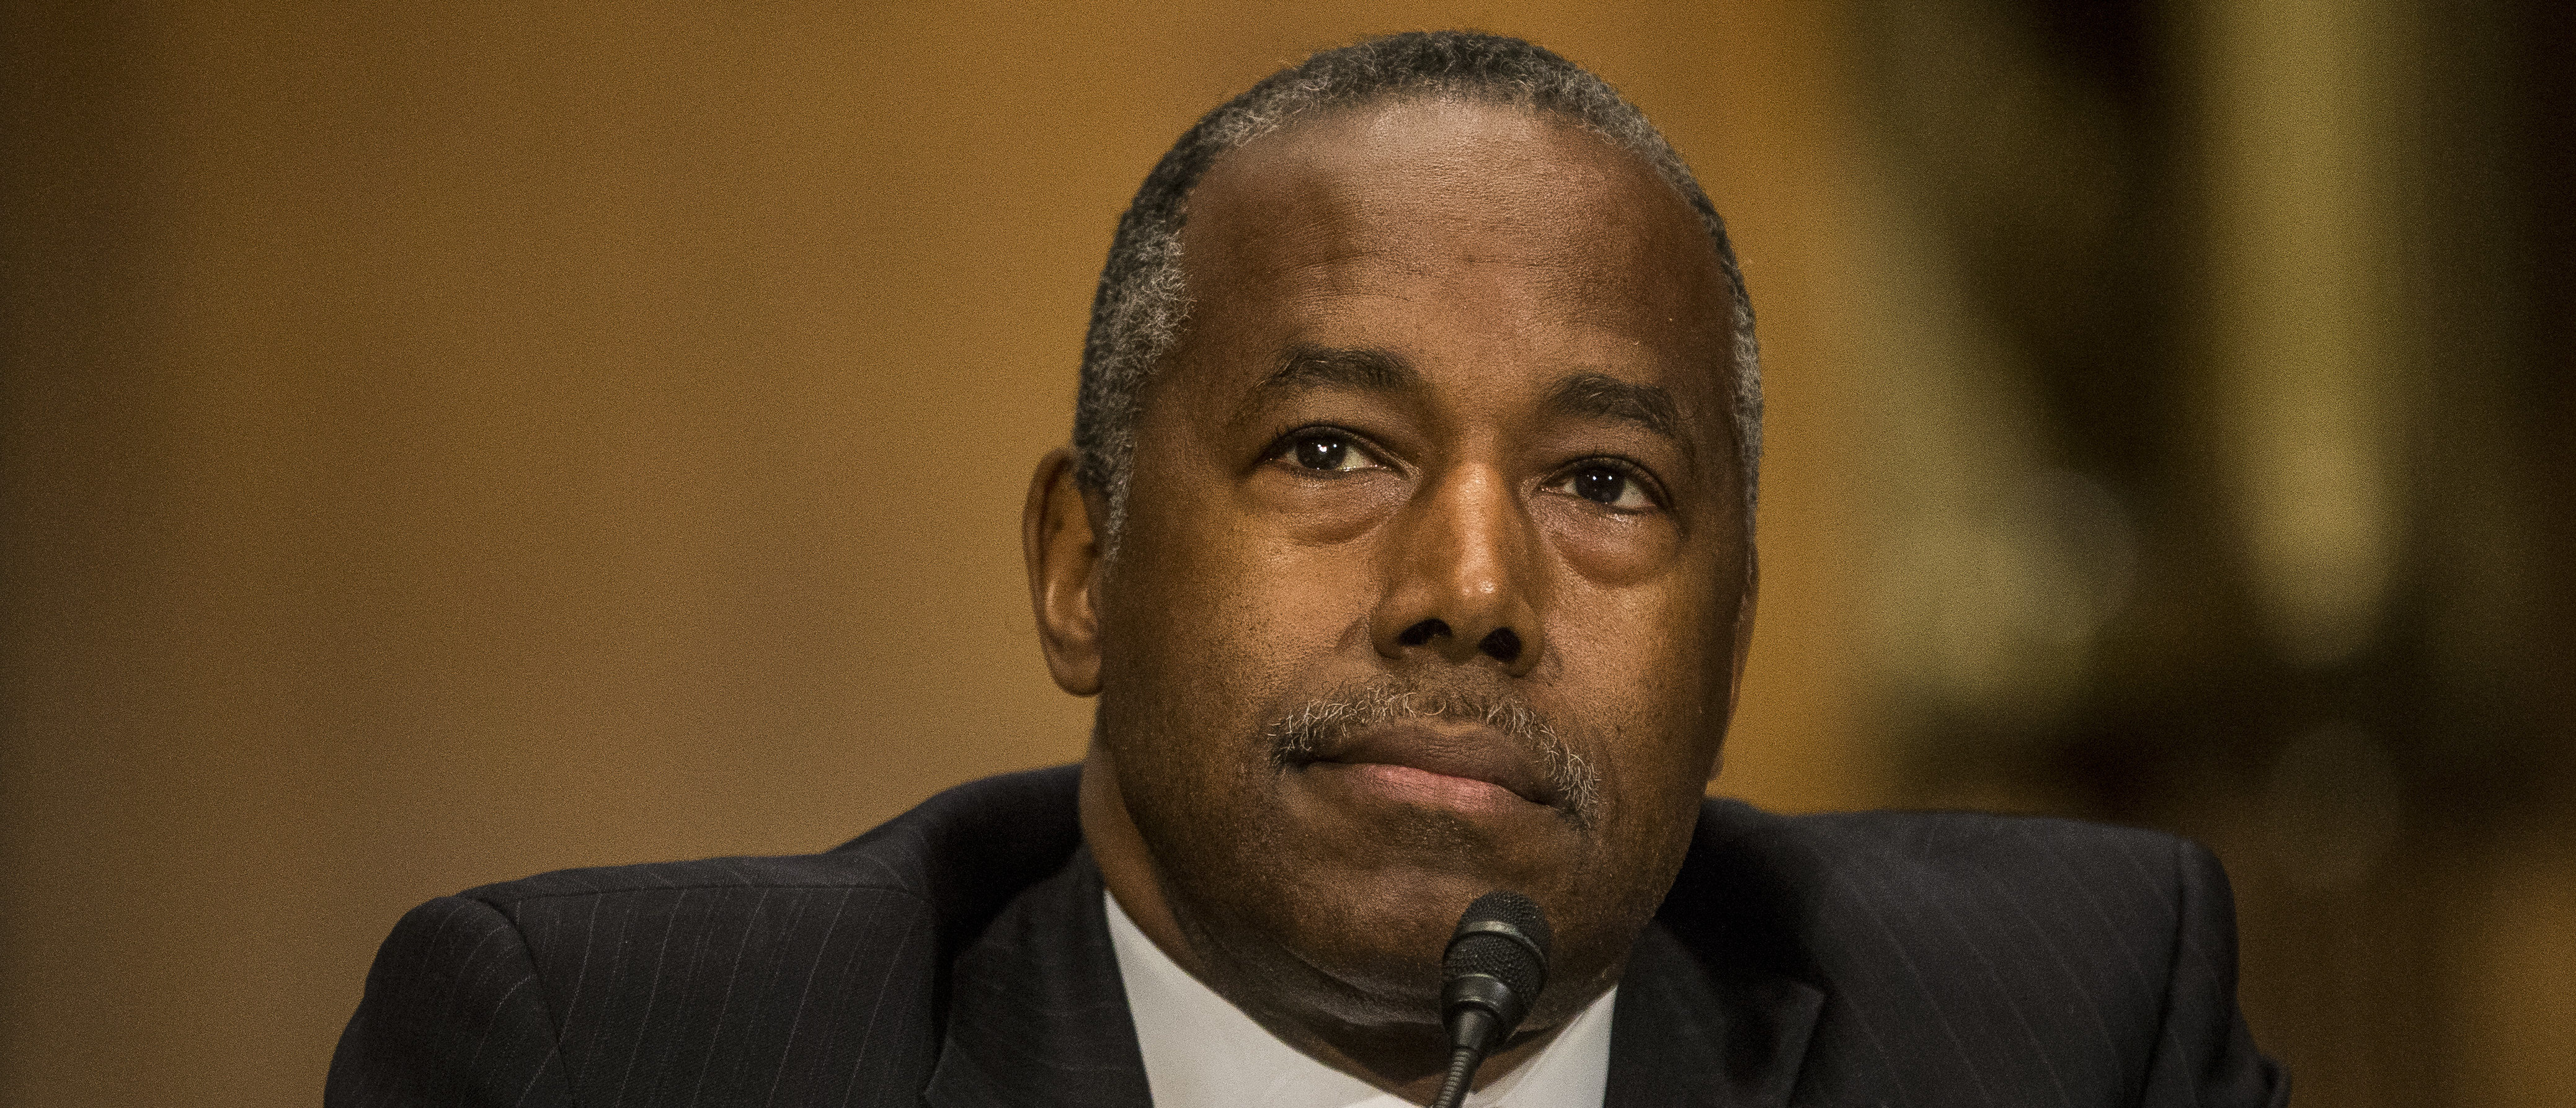 San Francisco HUD Employees Trash Ben Carson For Worrying About 'Big, Hairy Men' In Women's Shelters